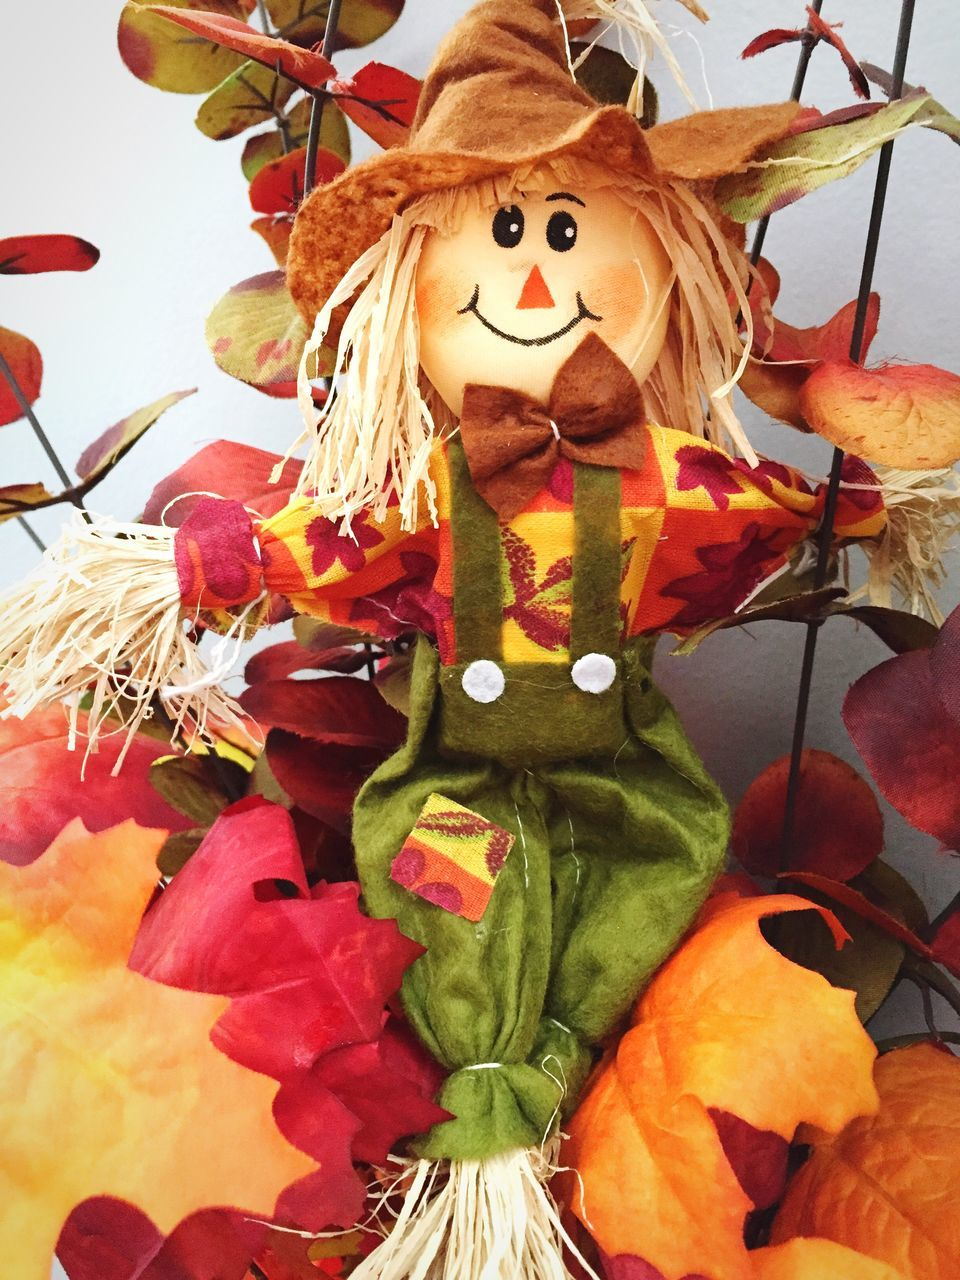 human representation, art and craft, scarecrow, creativity, celebration, no people, day, close-up, halloween, low angle view, leaf, anthropomorphic face, indoors, jack o lantern, clown